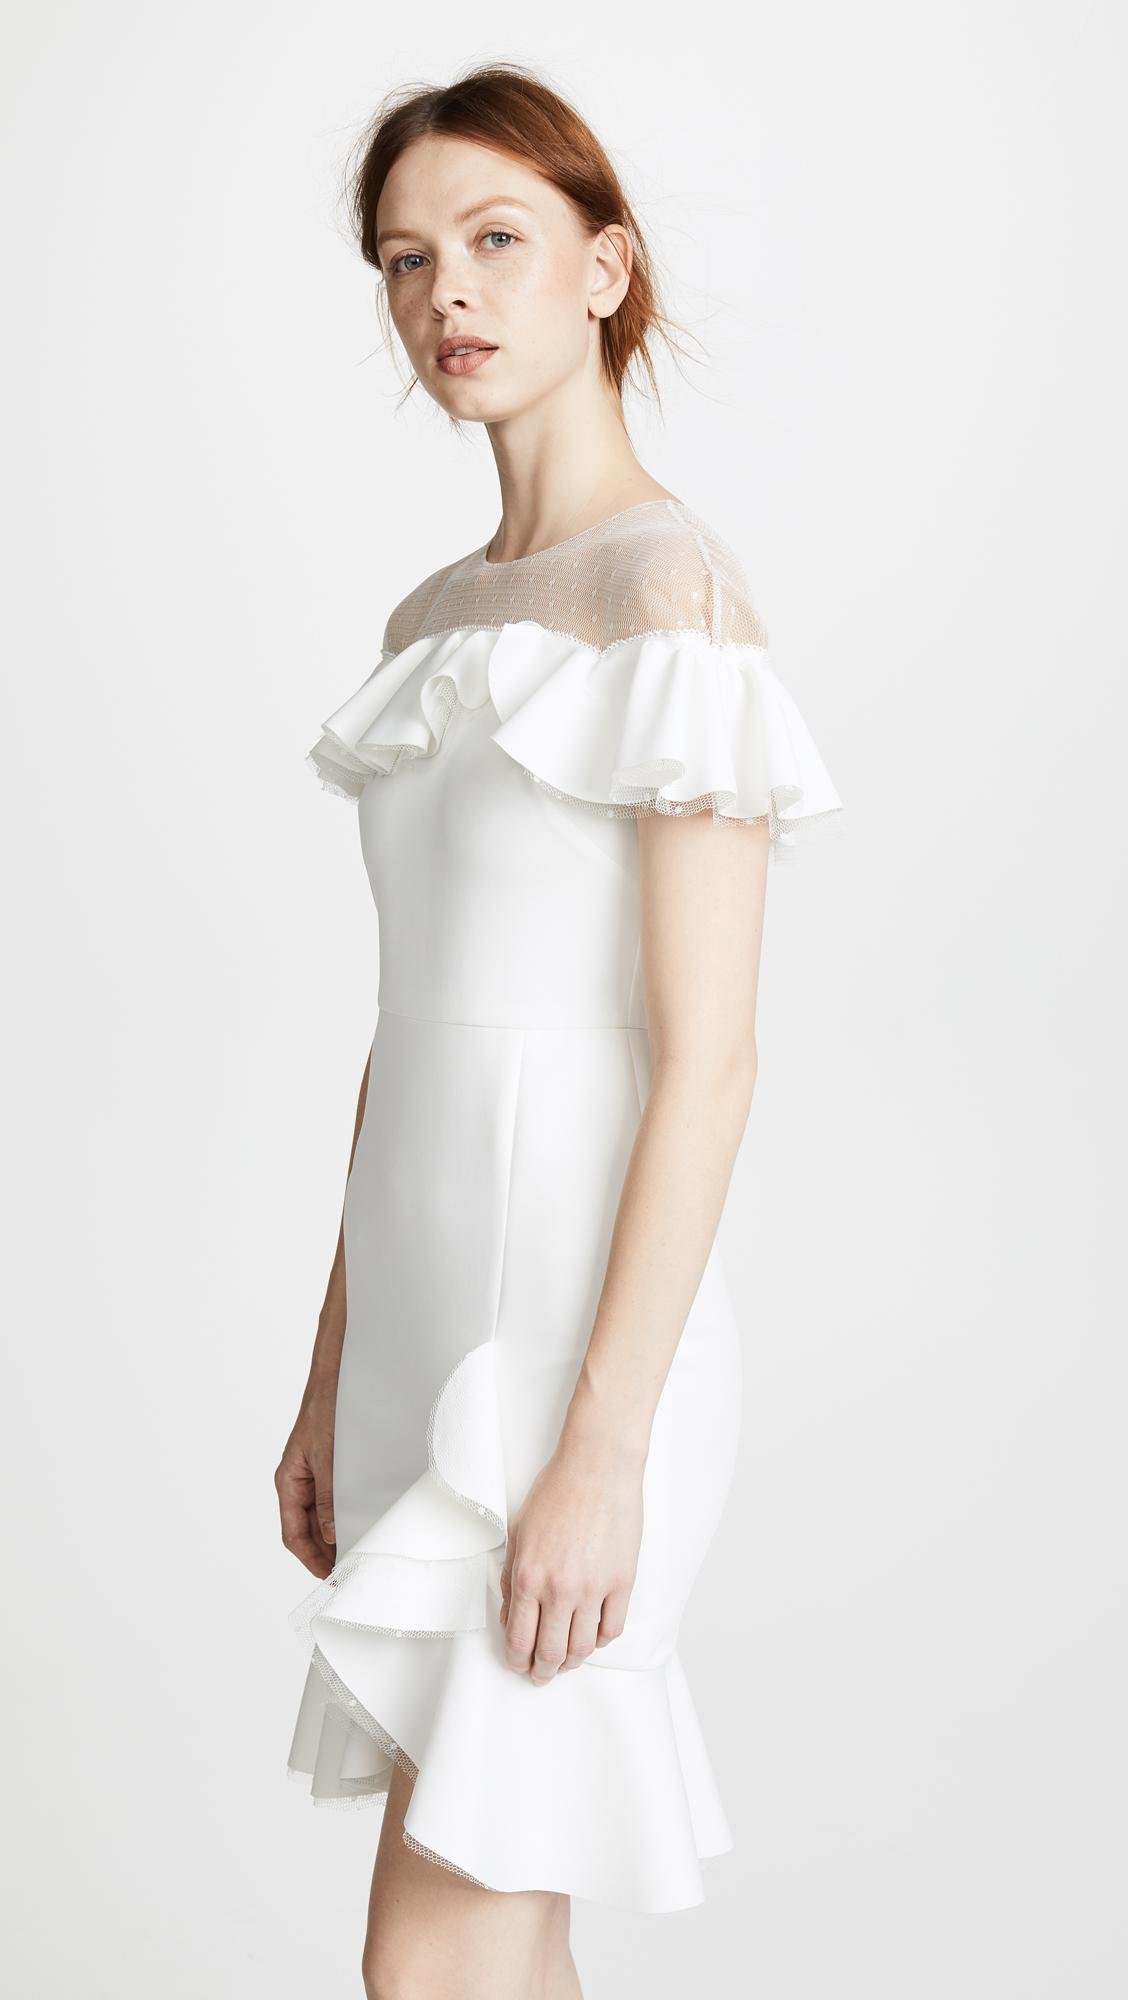 72692de111921 Gallery. Previously sold at: Shopbop · Women's Neoprene Dresses Women's  White Cocktail Dresses